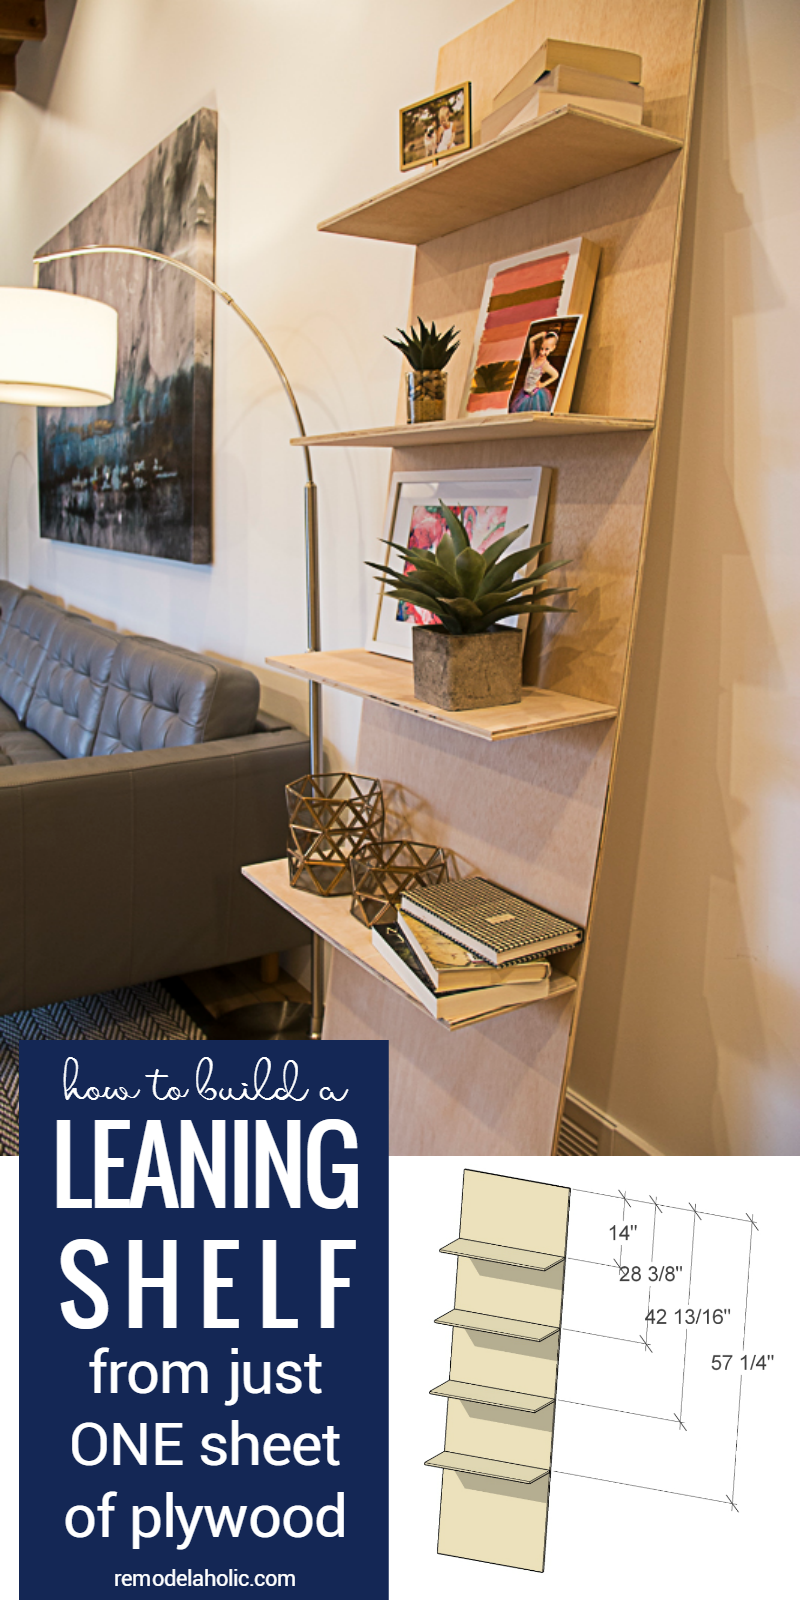 How To Build A One-Sheet Plywood Leaning Shelf